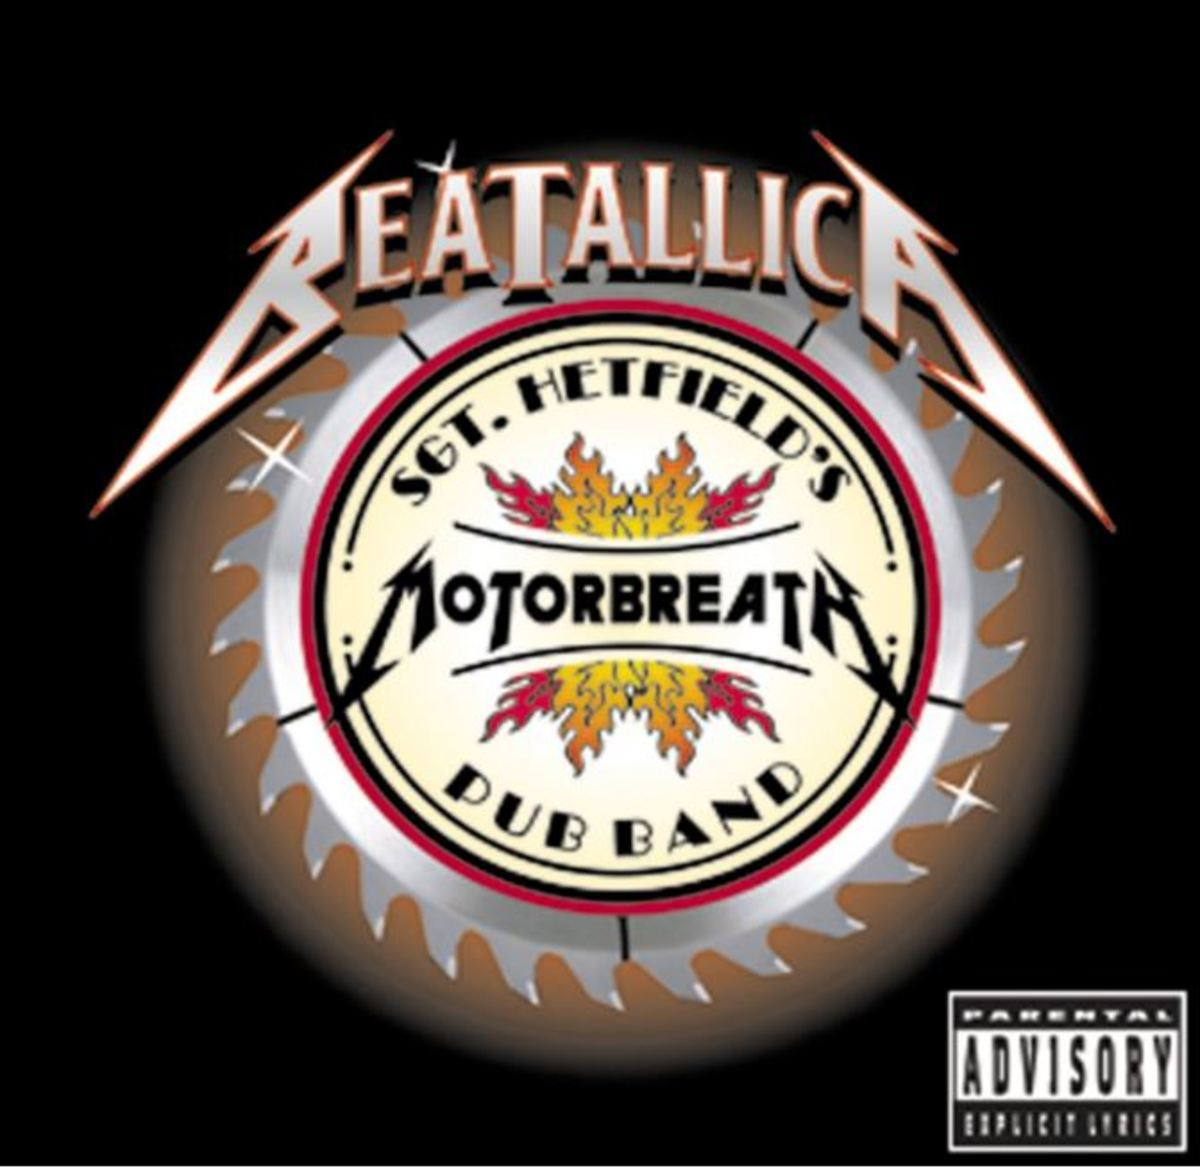 "Beatallica, ""Sgt. Hetfield's Motorbreath Pub Band"" Album Review"